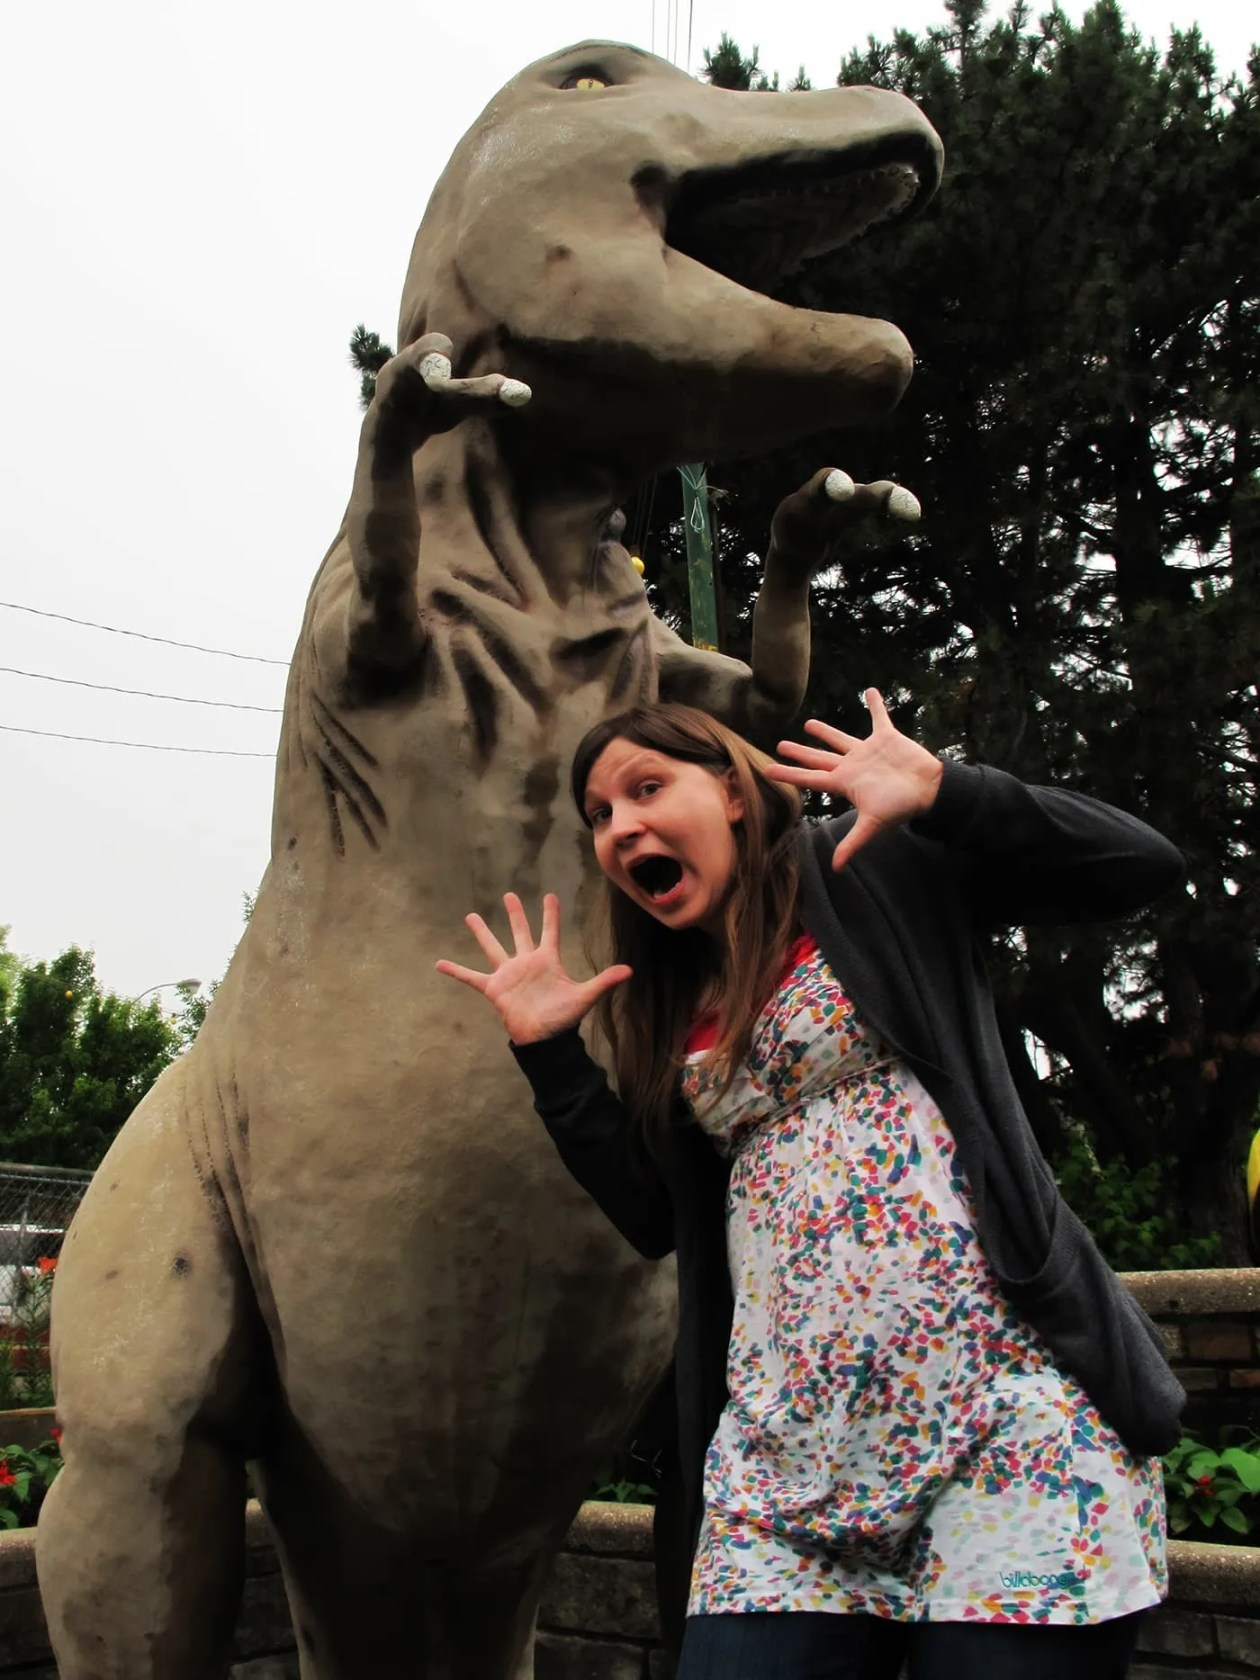 Val is scared of the dinosaur at Novelty Golf in Lincolnwood, Illinois.